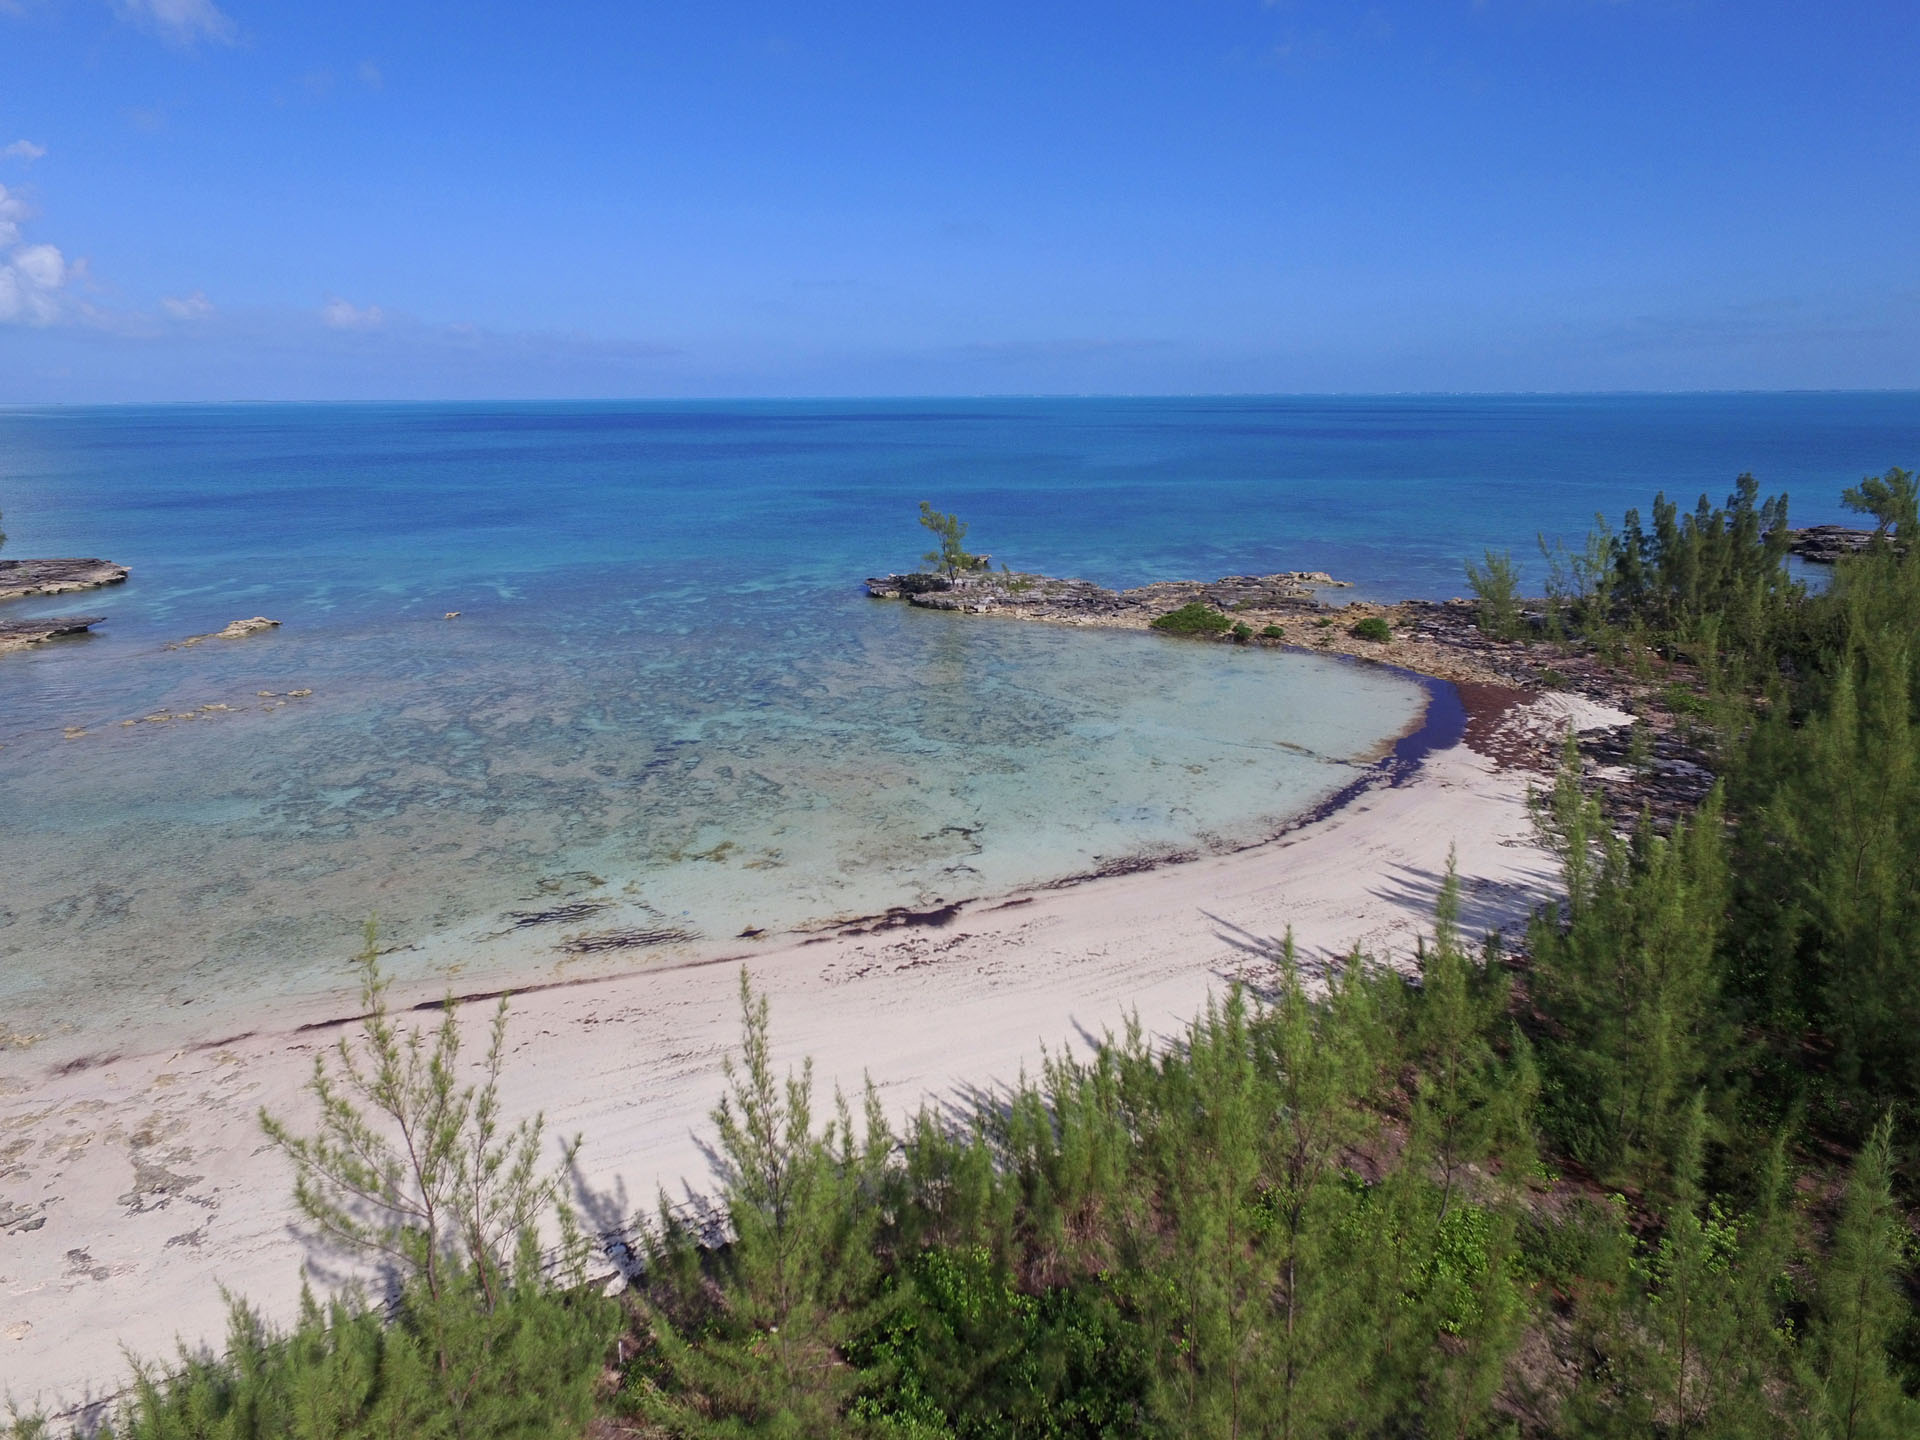 Land for Sale at 2.257 Waterfront Acres, Central Abaco Island - Cabbage Point Parcel 2 Turtle Rocks, Abaco, Bahamas